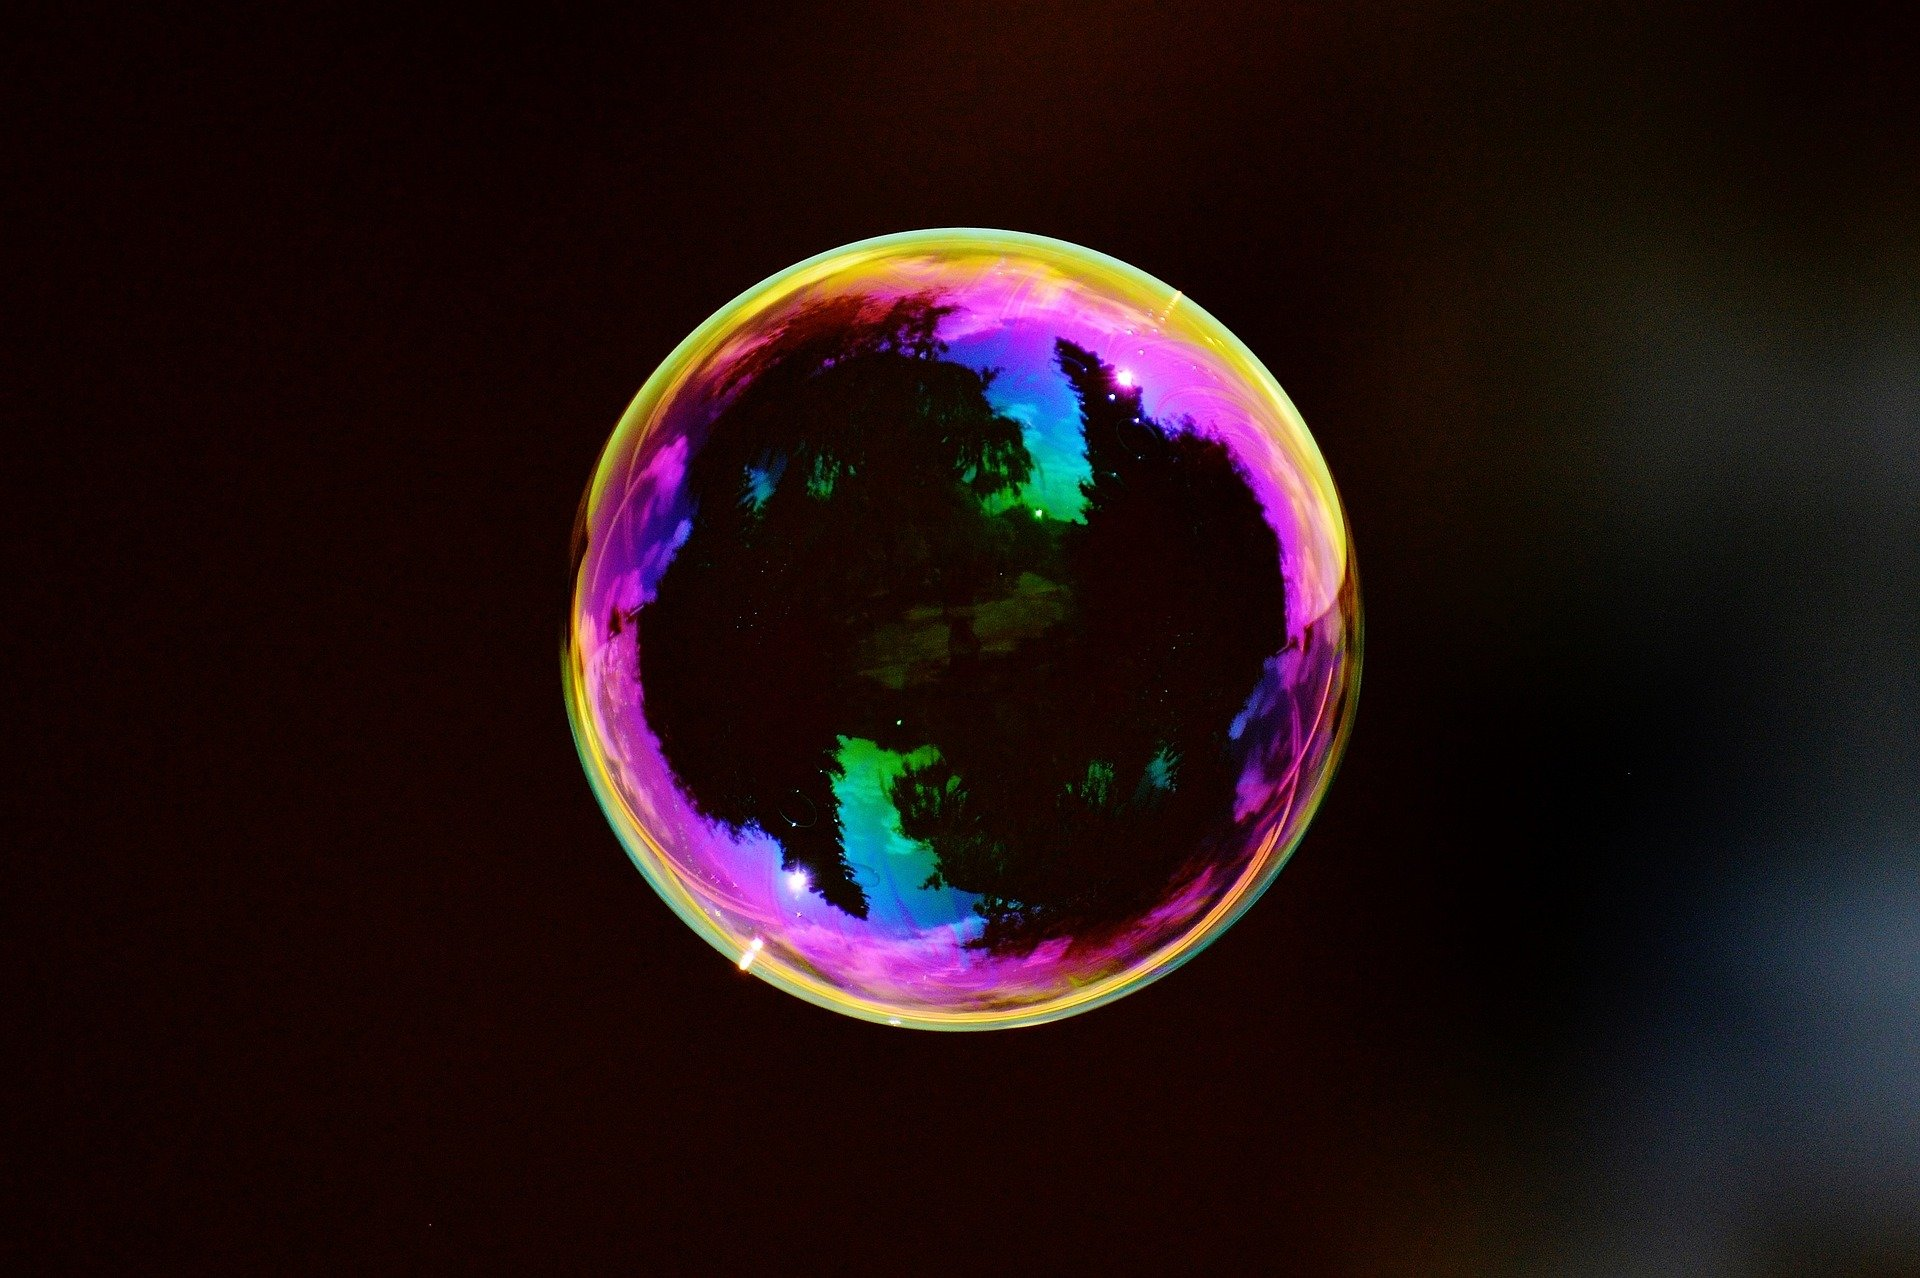 math describes how bubbles pop